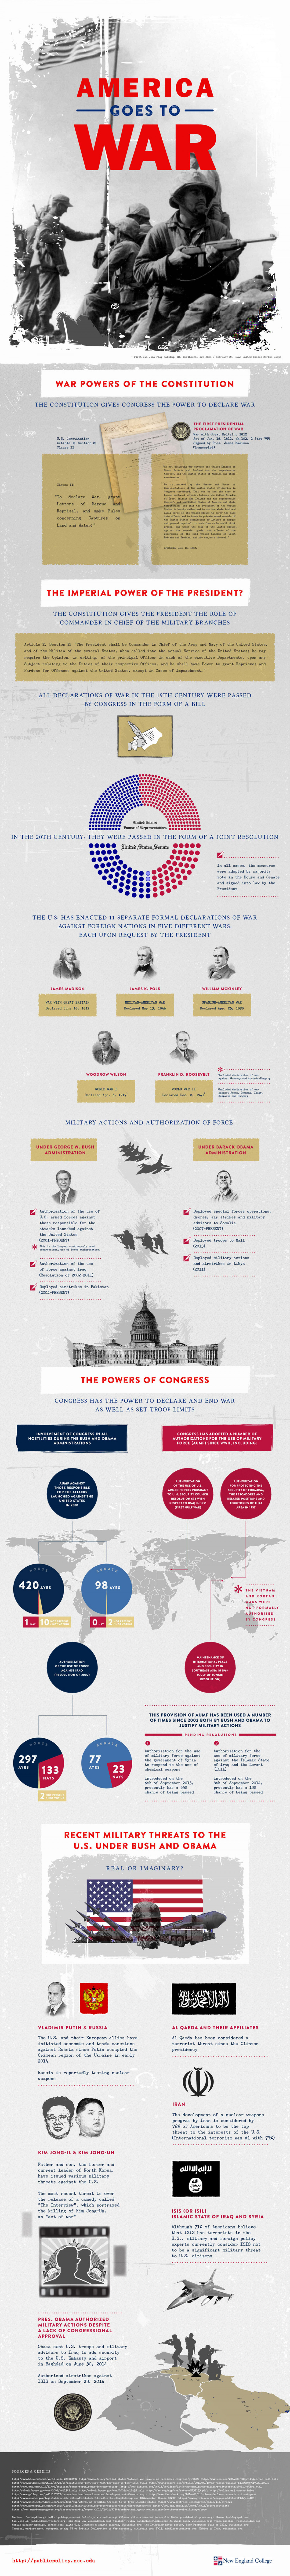 America Goes to War- War Power of the Constitution Infographic